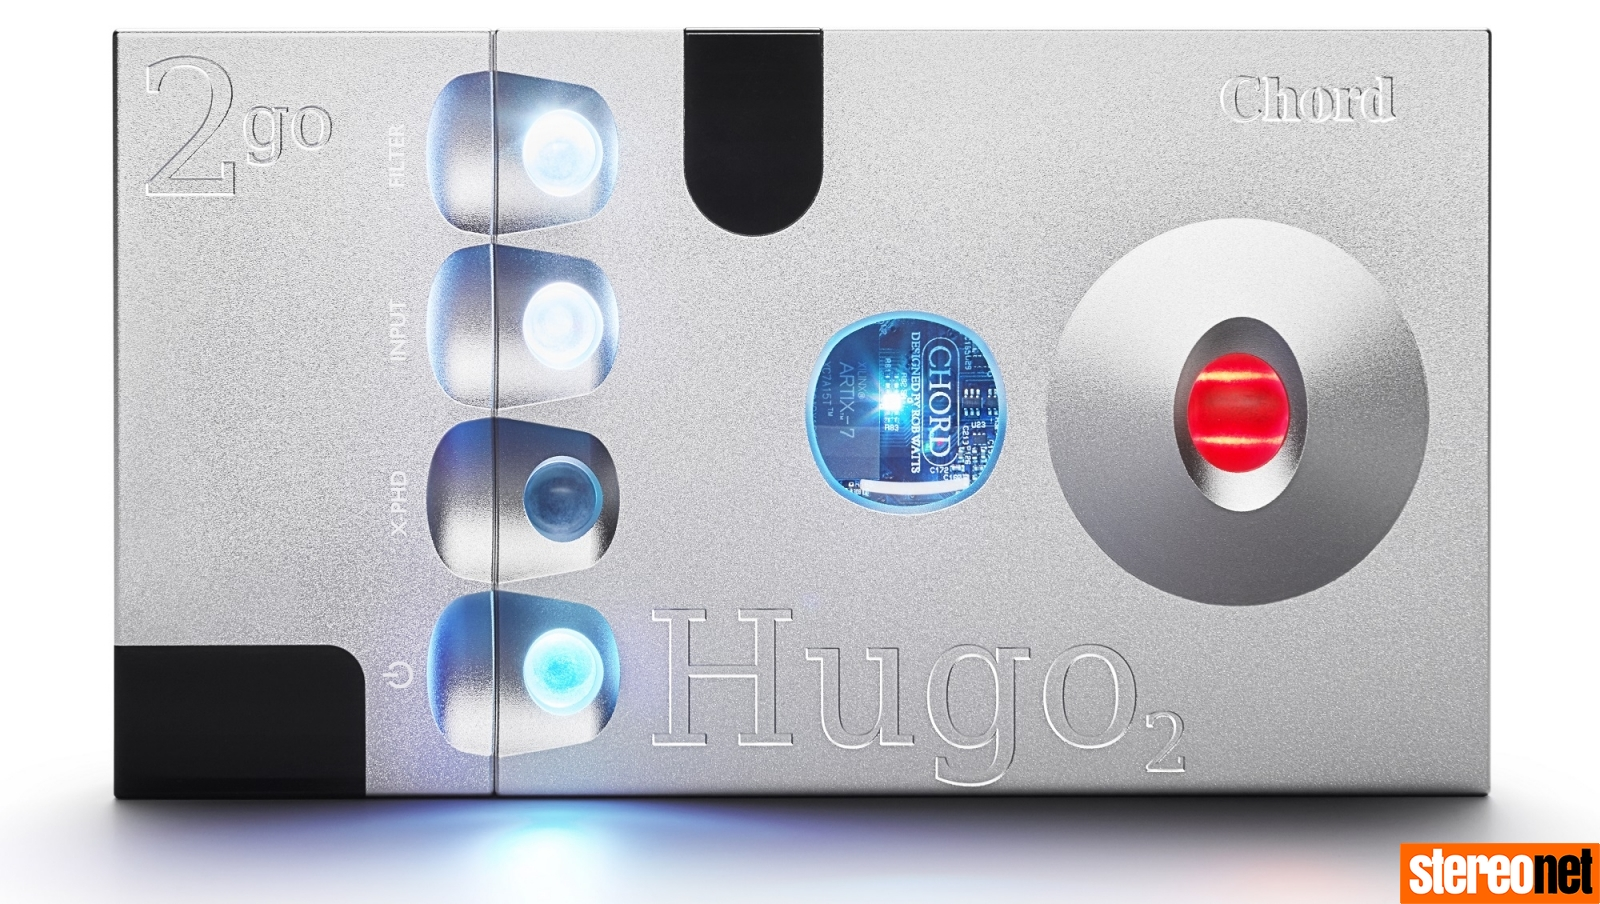 Chord 2go and Hugo 2